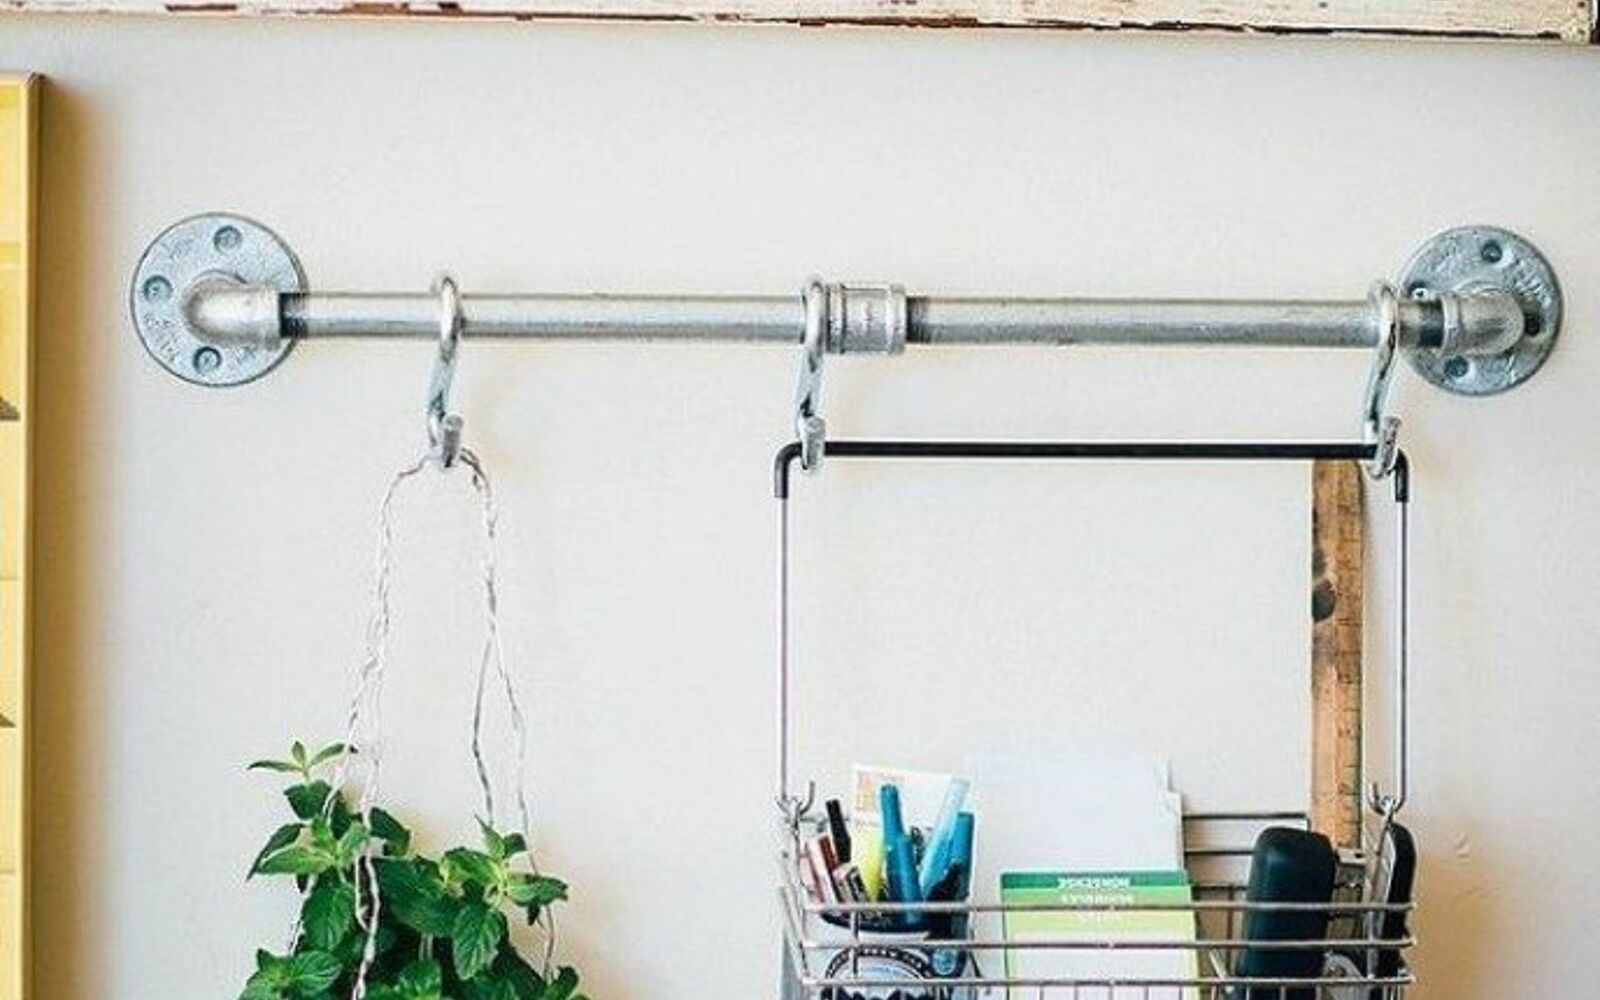 s the 15 coolest ways to reuse pipes in your home decor, Hang it on your wall as an organizer